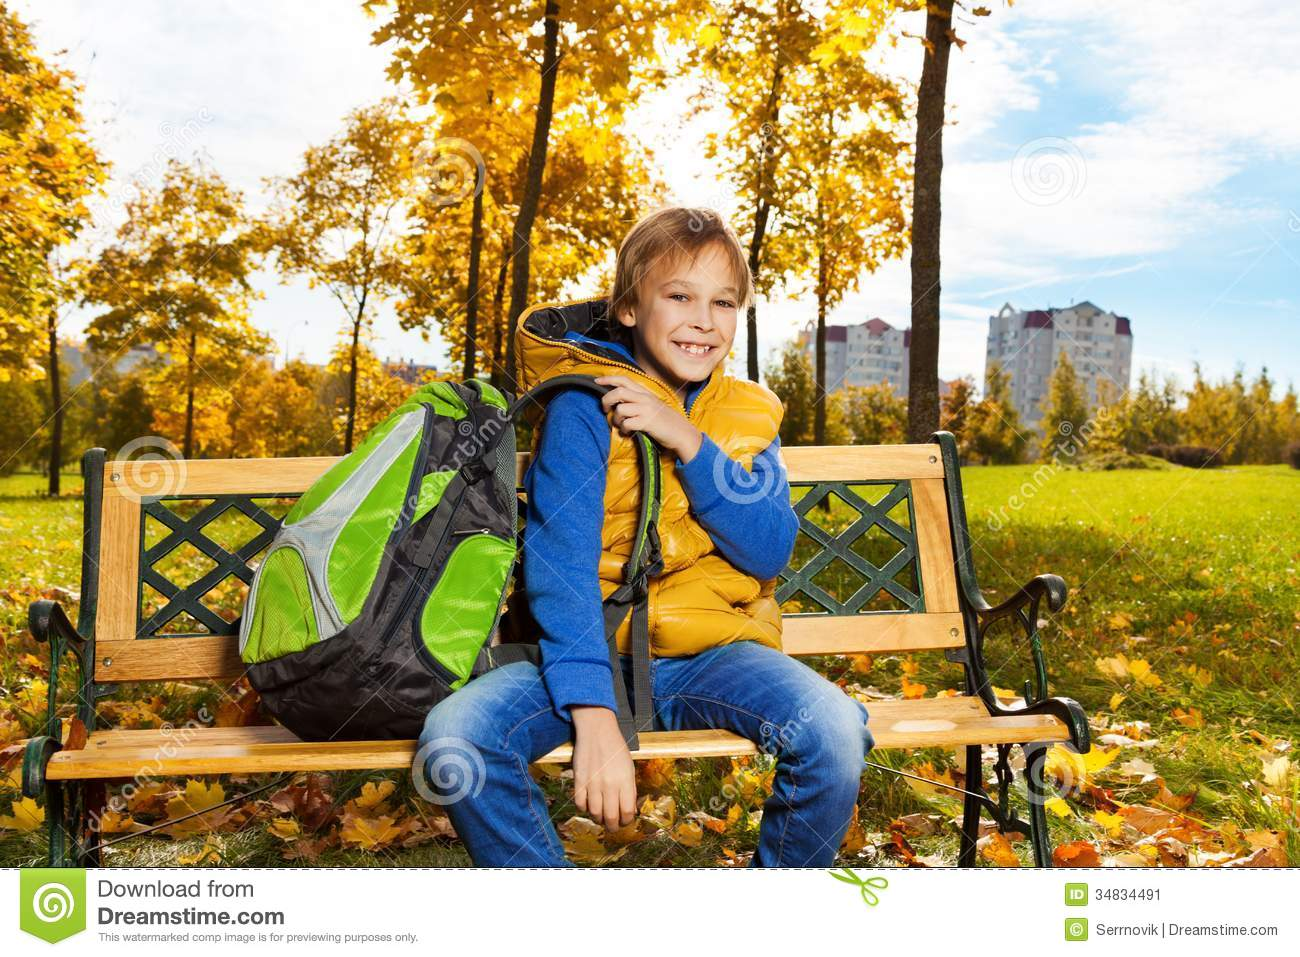 School Boy Sitting On Bench In Autumn Park Stock Image - Image of ... 3b80ae6be8d20